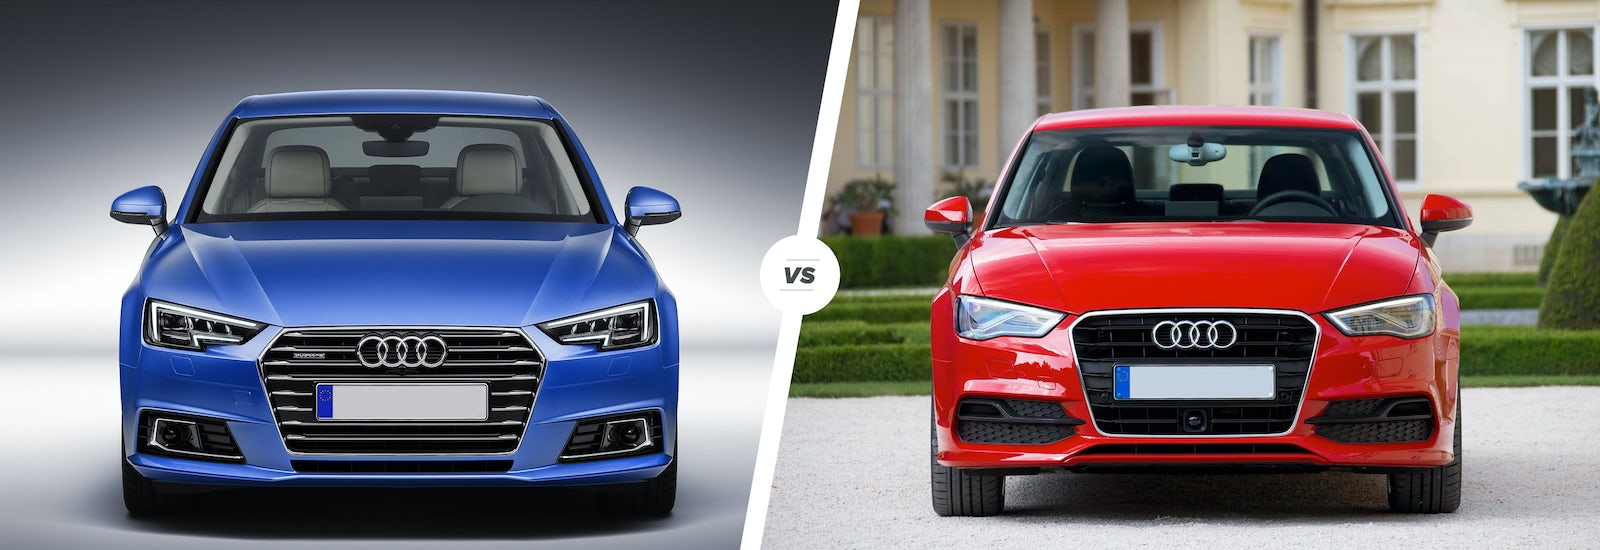 Audi A4 vs A3 Saloon: sibling showdown | carwow